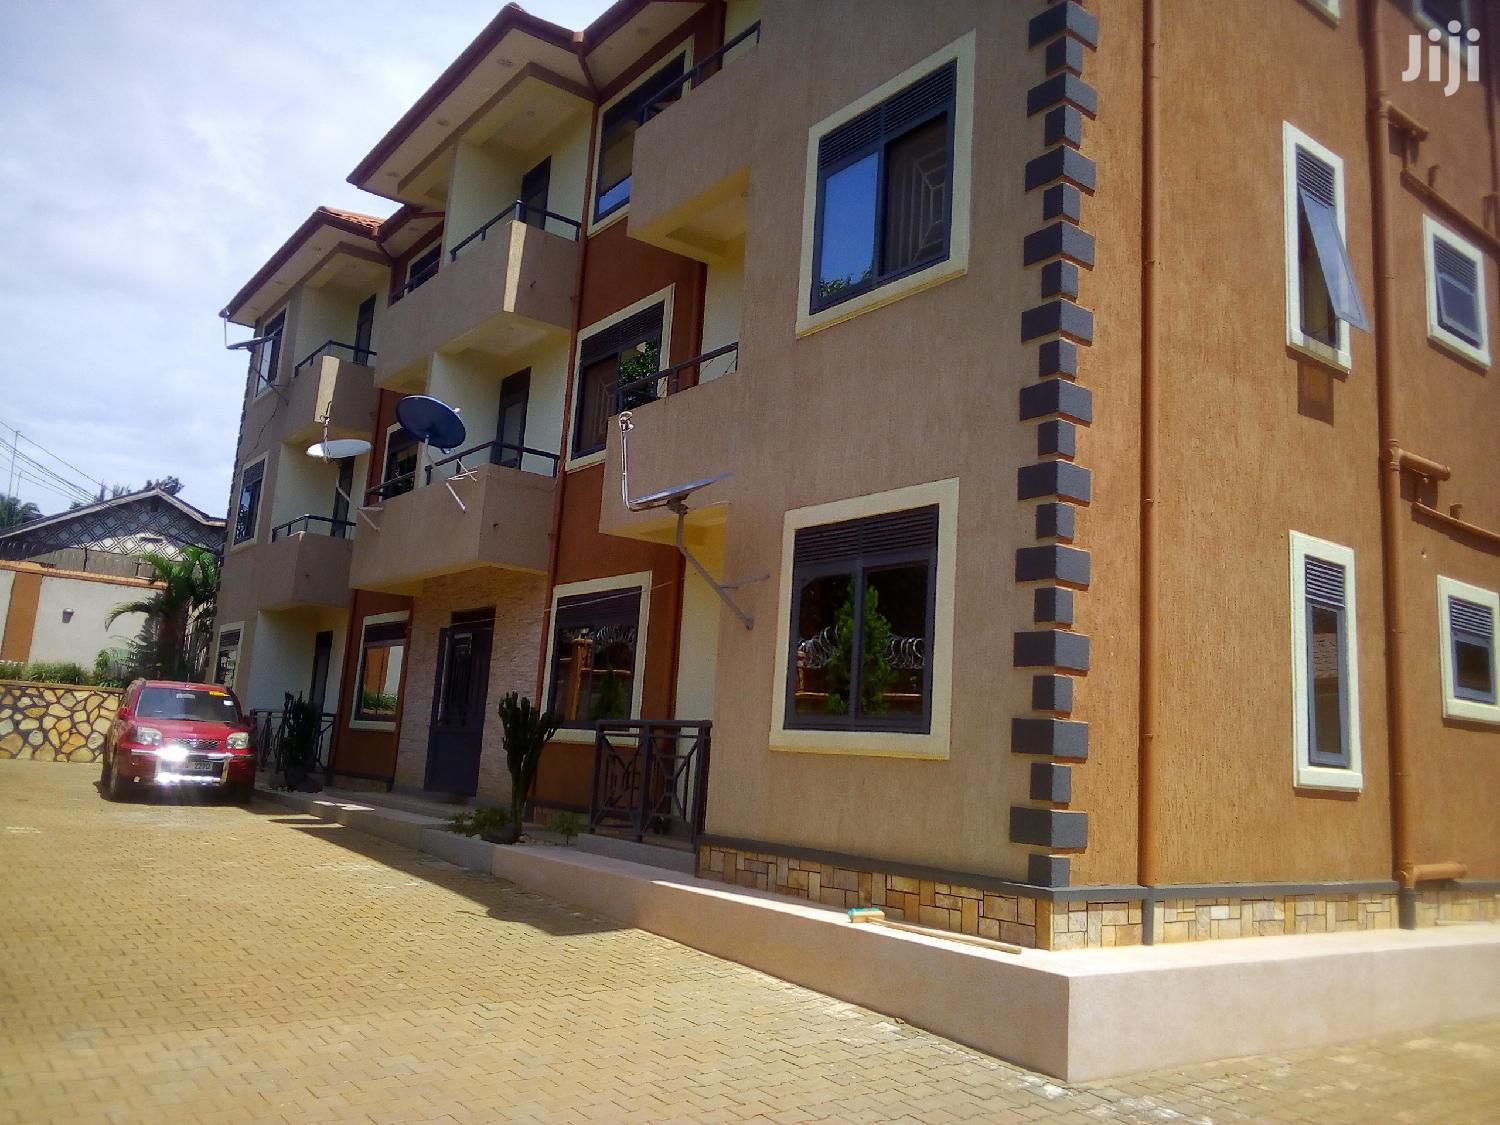 Two Bedroom Apartment In Bukoto For Rent | Houses & Apartments For Rent for sale in Kampala, Central Region, Uganda